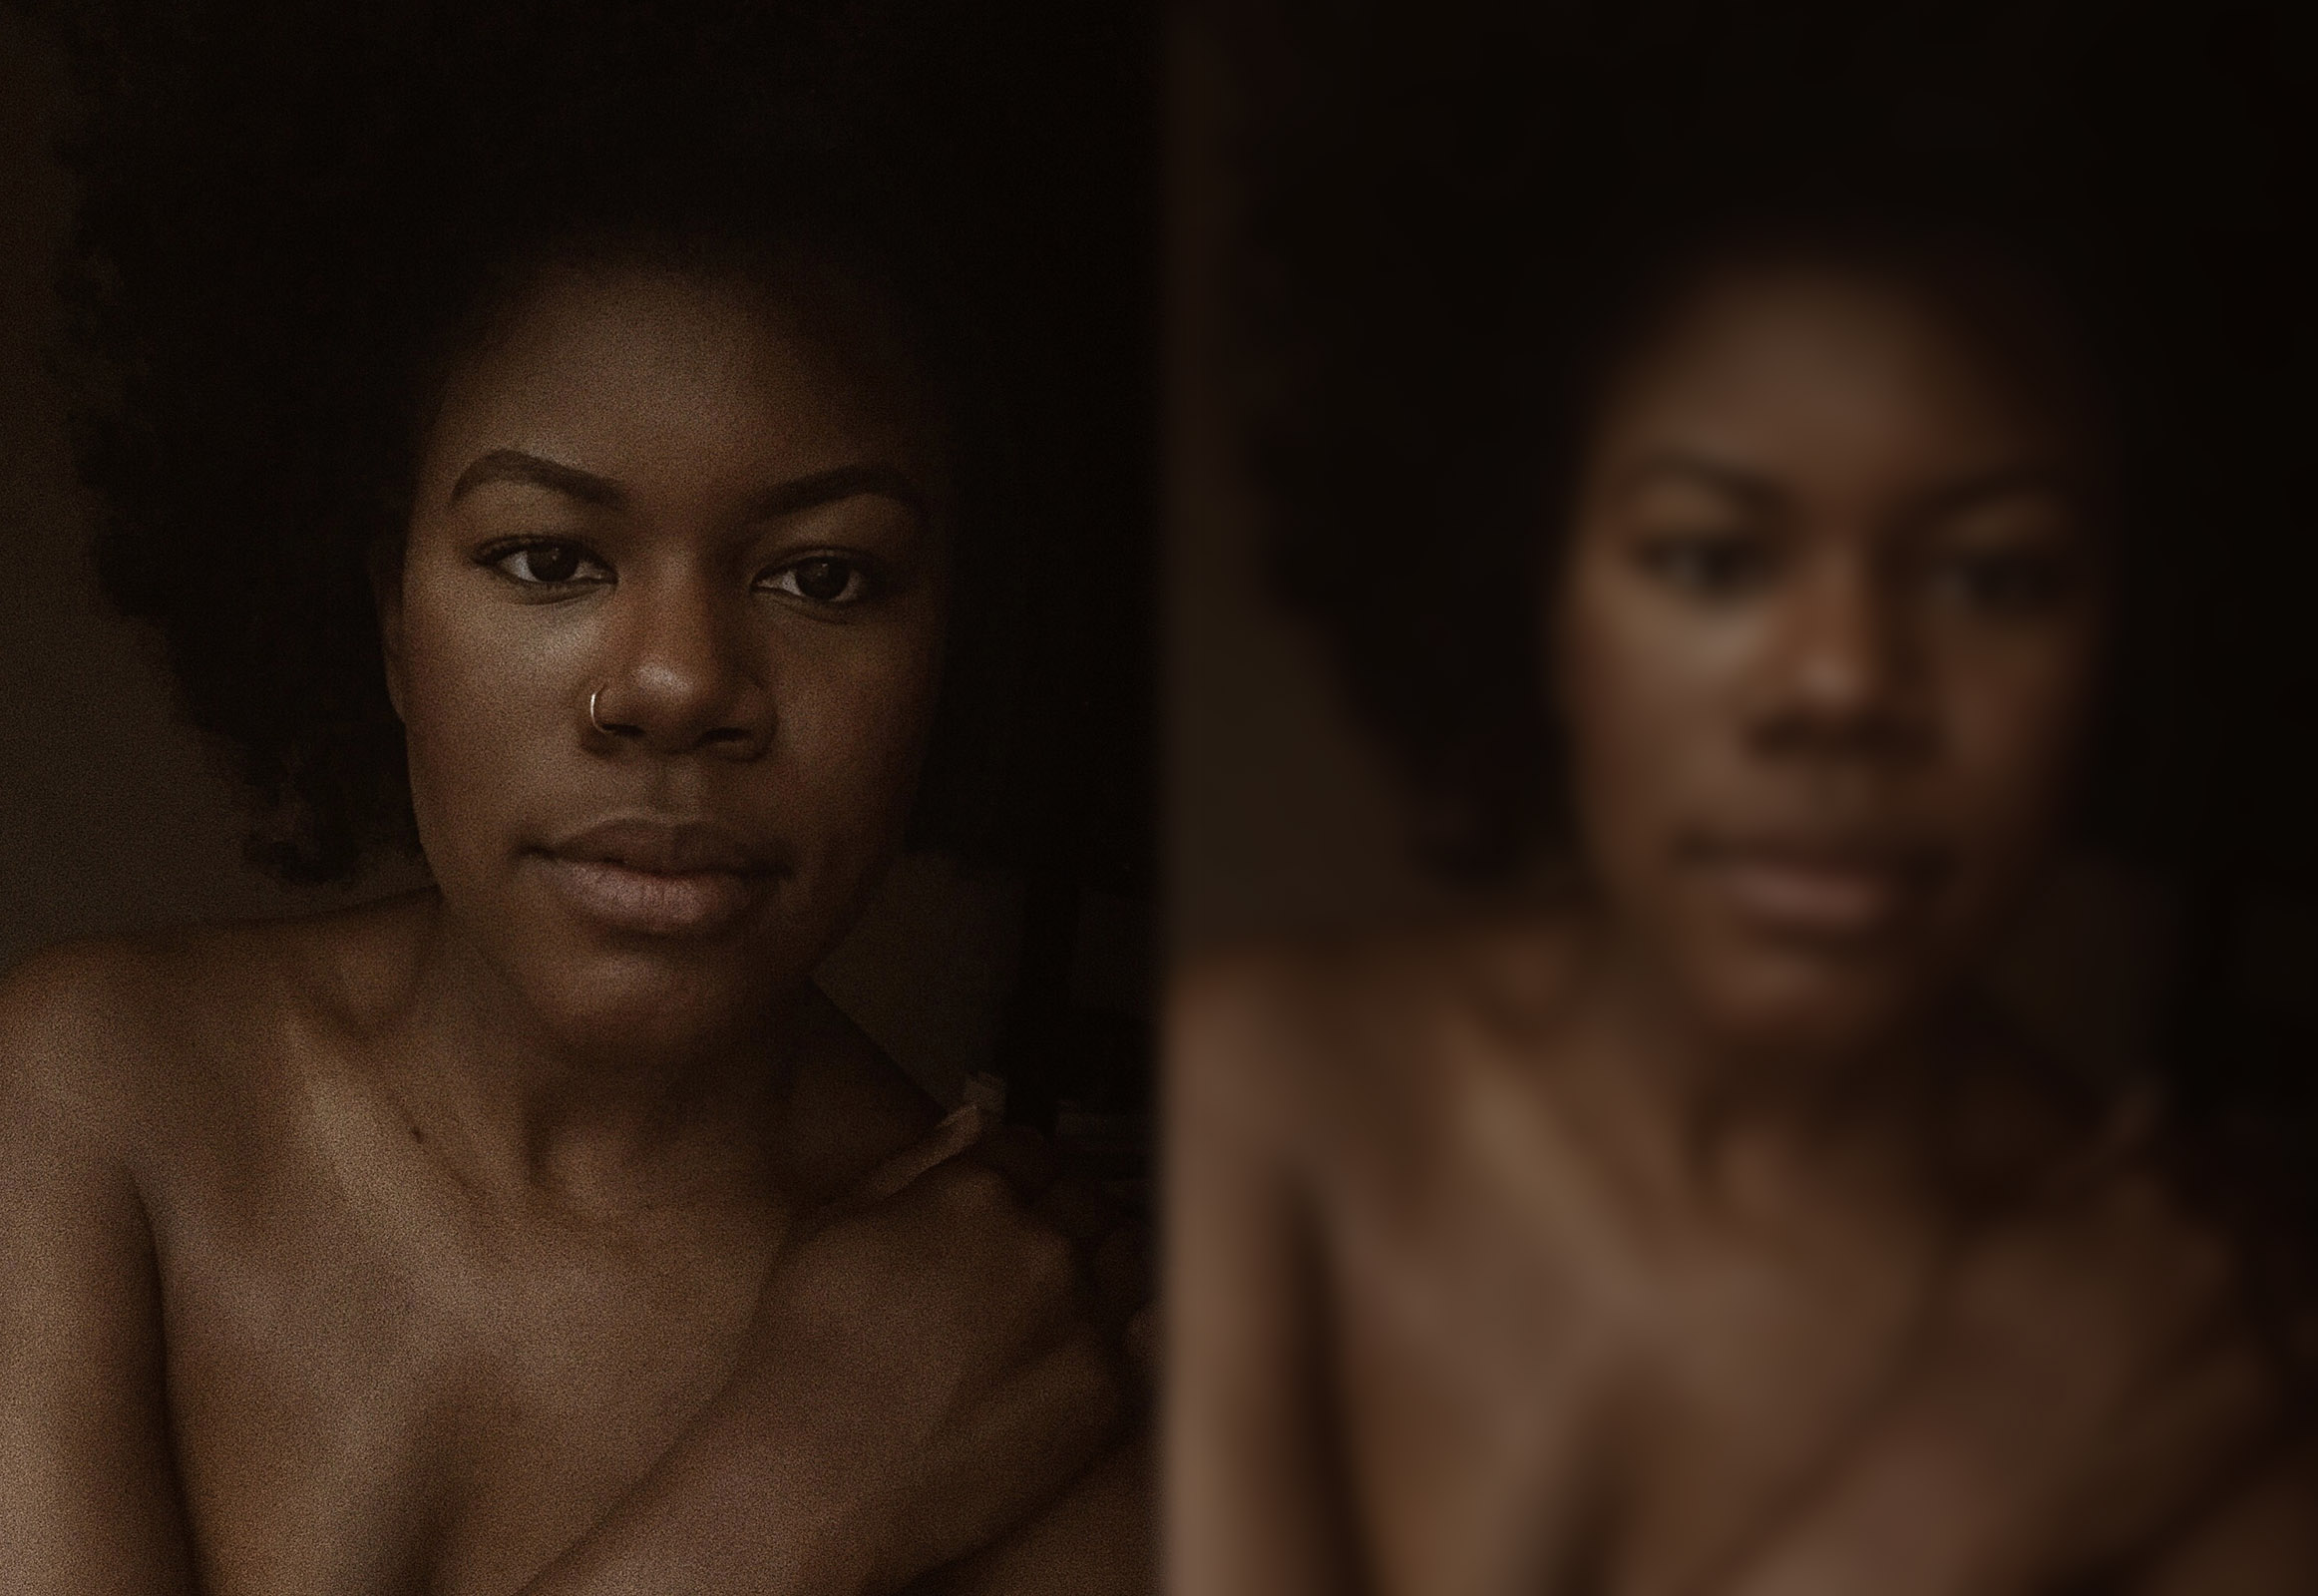 Self-portrait-black-woman-with-afro-by-Atlanta-portrait-photographer-Chanel-French-1.jpg